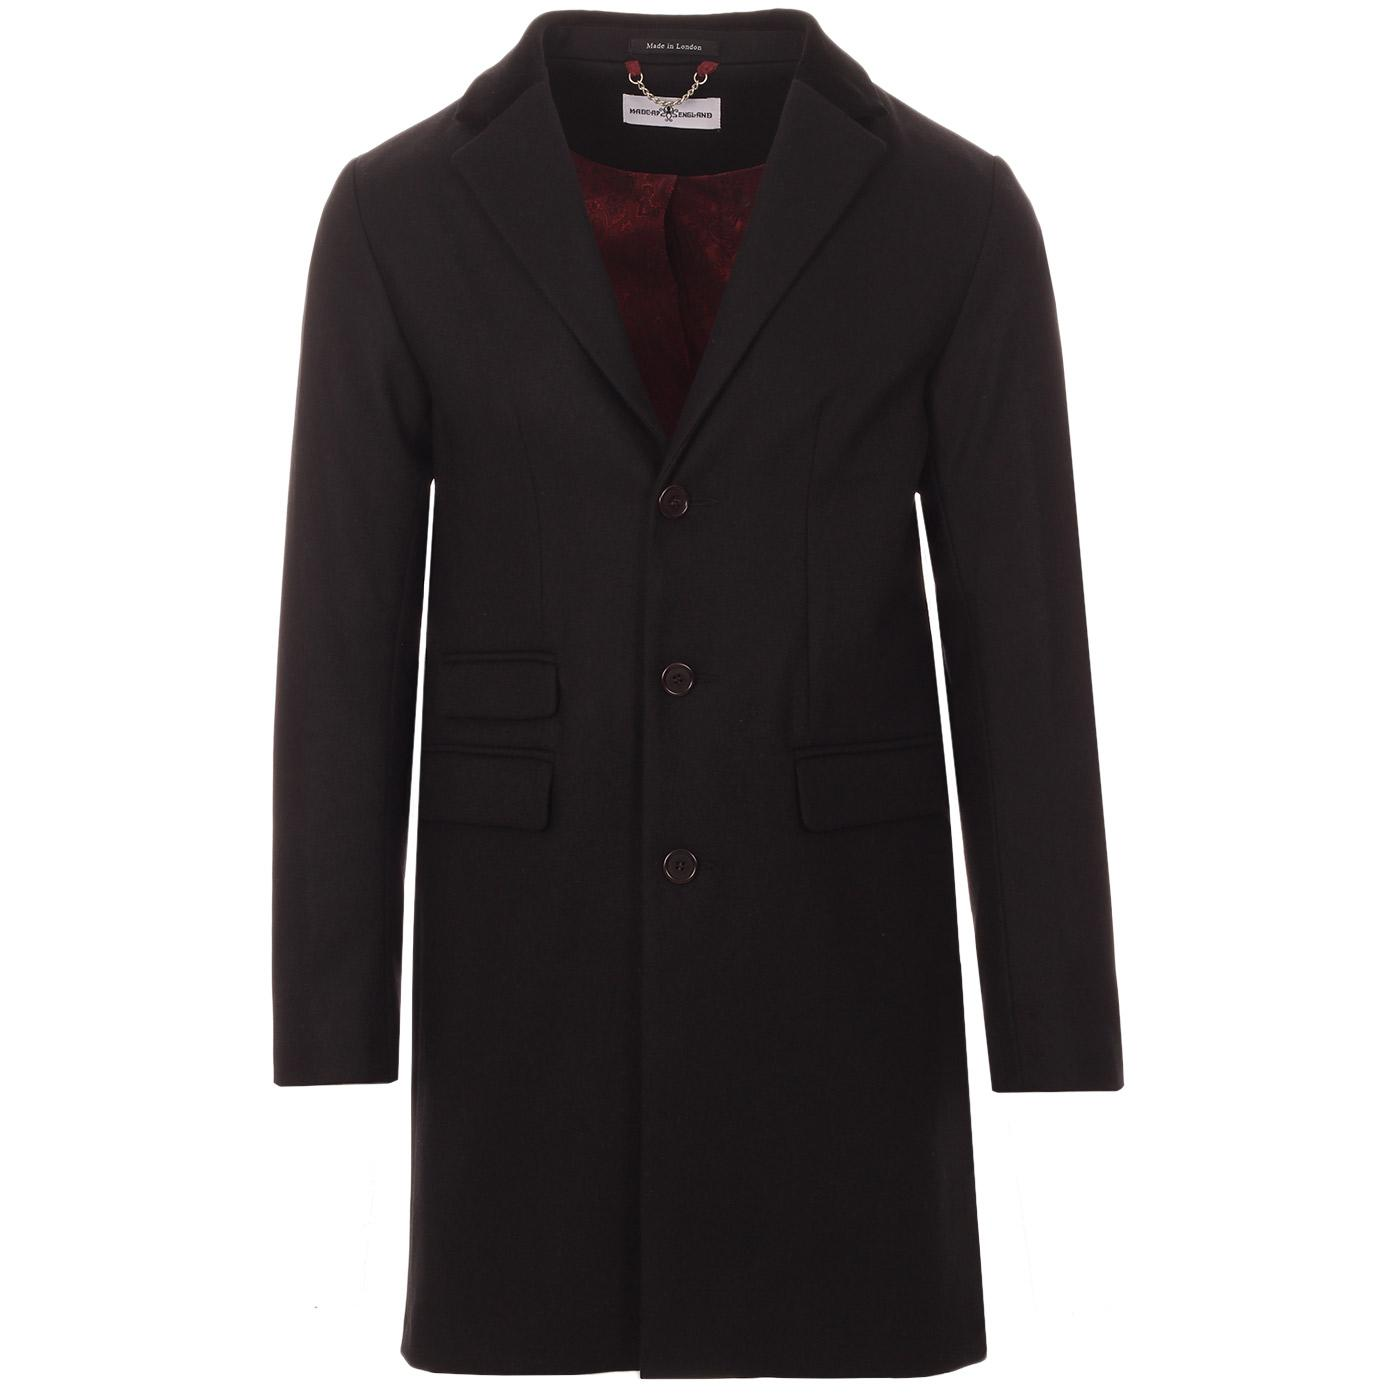 MADCAP ENGLAND Made in England Mod Covert Coat (B)